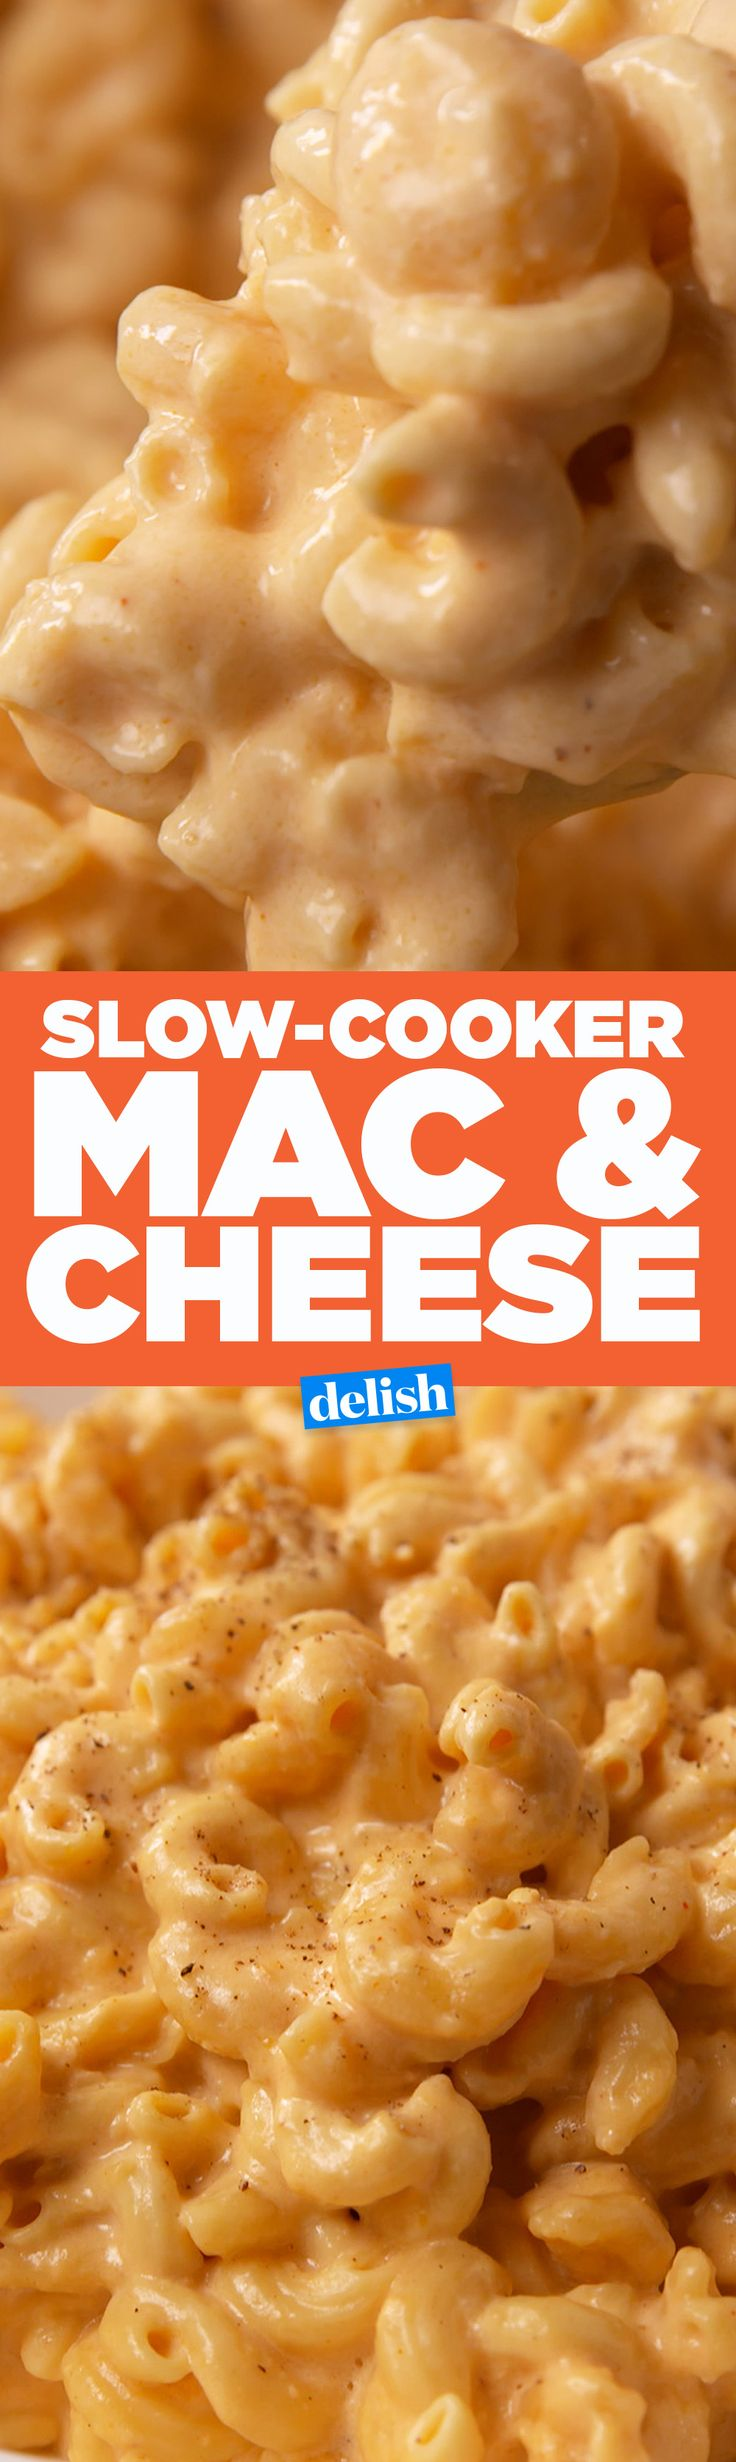 Slow-Cooker Mac & Cheese is so much better than the stovetop stuff. Get the recipe on Delish.com.